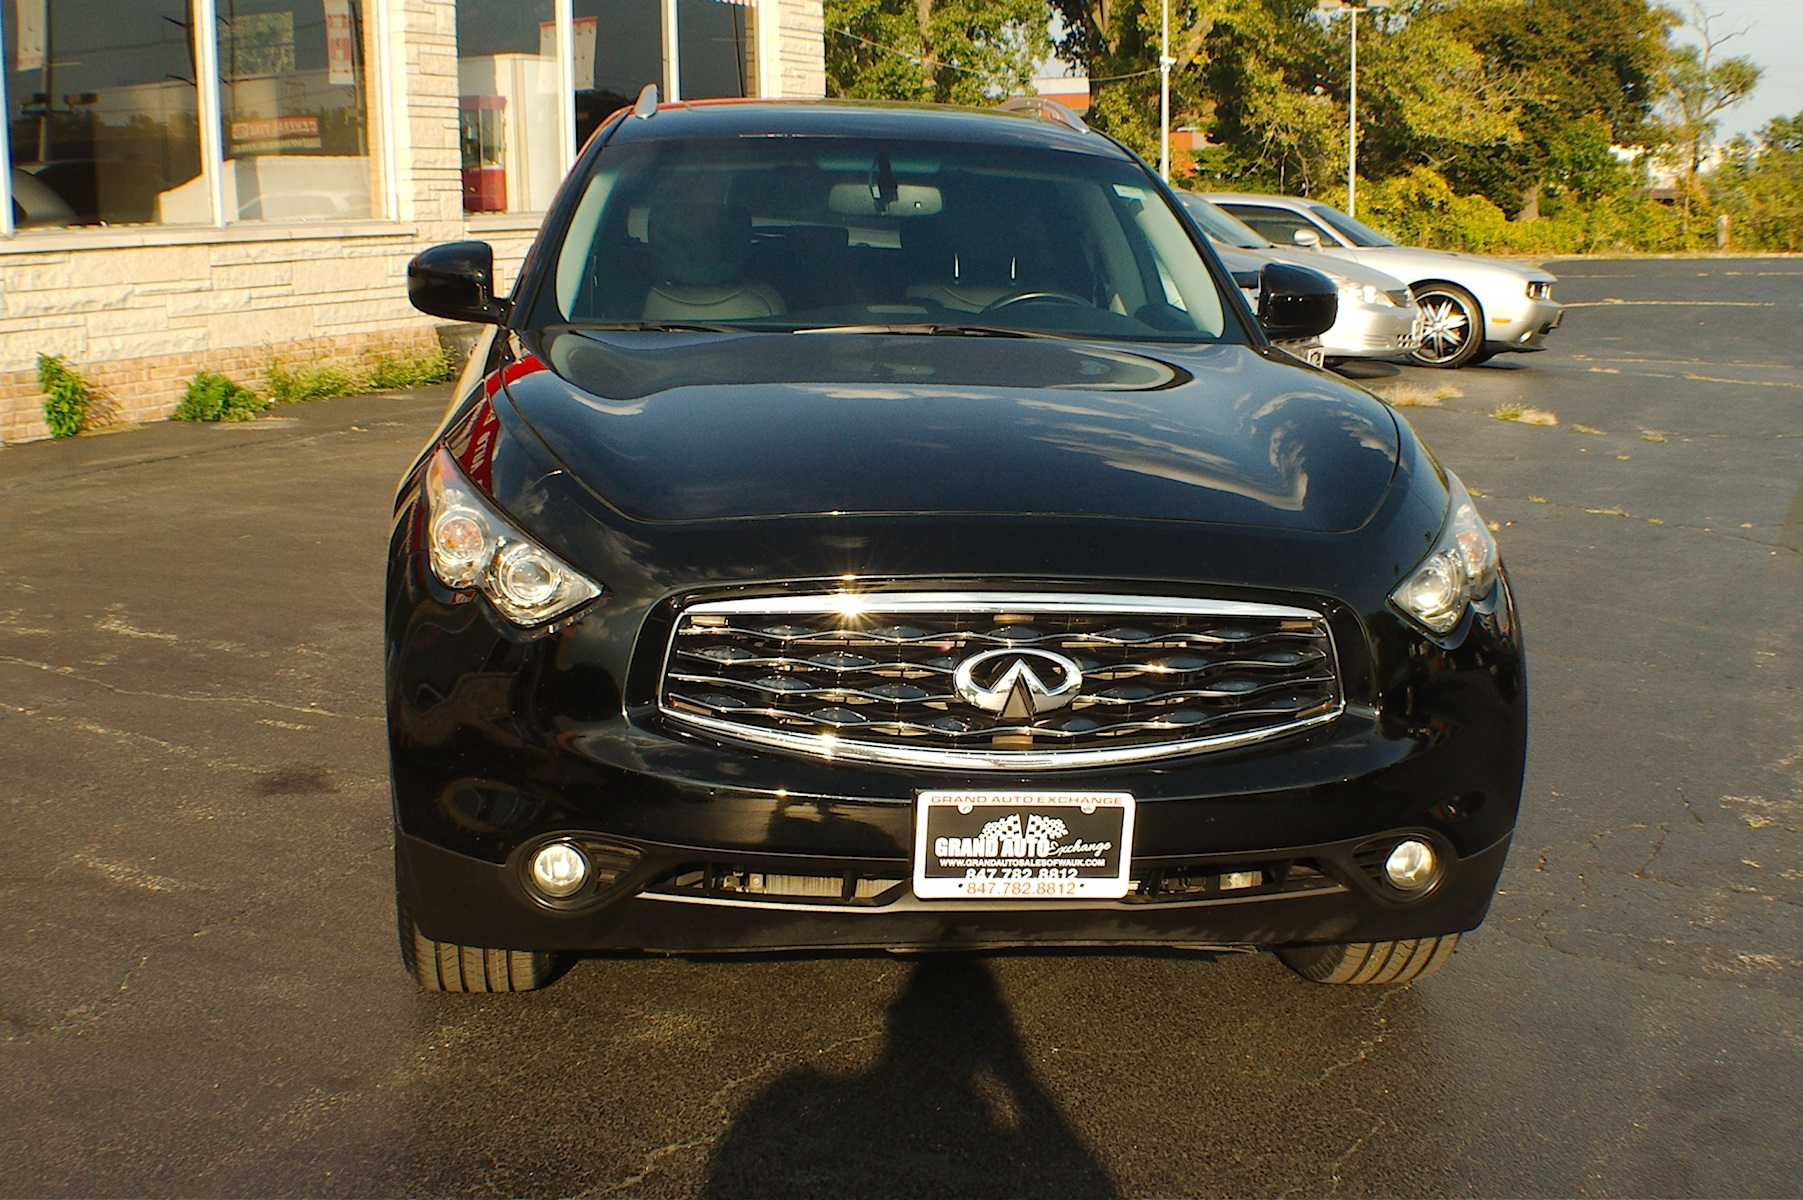 2009 Infiniti FX35 Black SUV Used Car Sale Gurnee Kenosha Mchenry Chicago Illinois